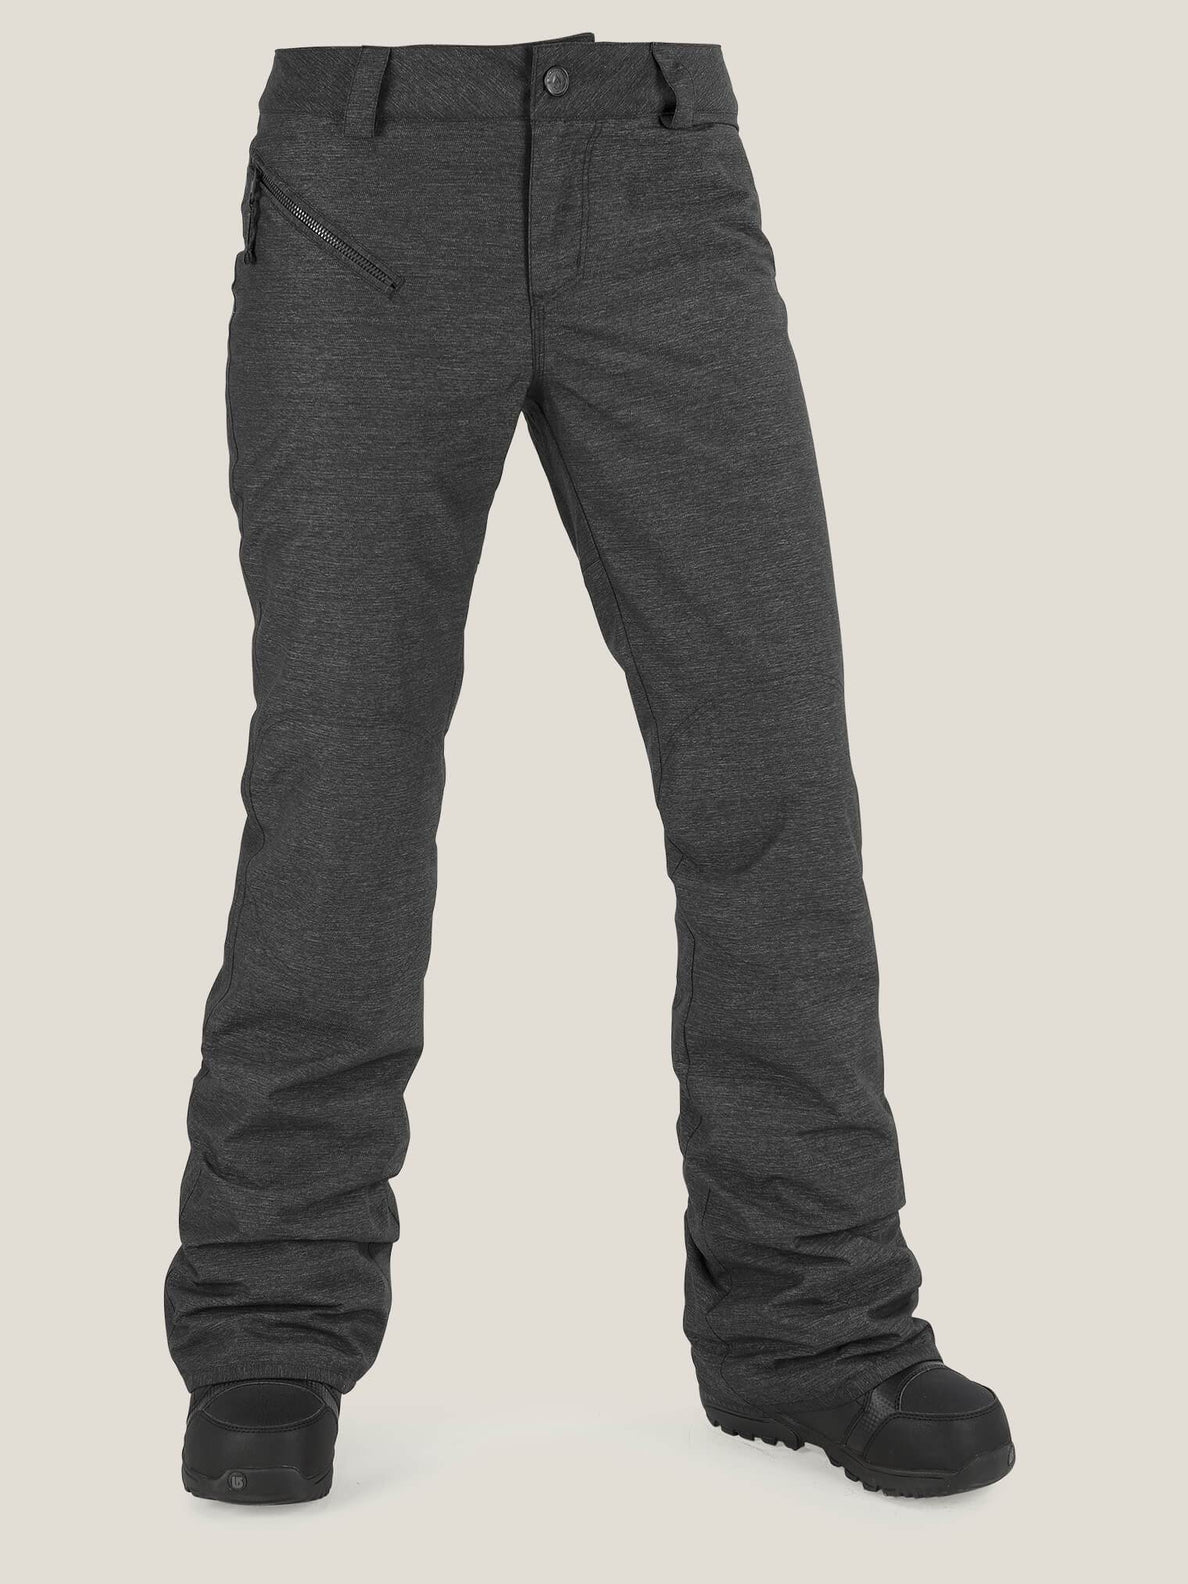 Pinto Pant In Black, Front View